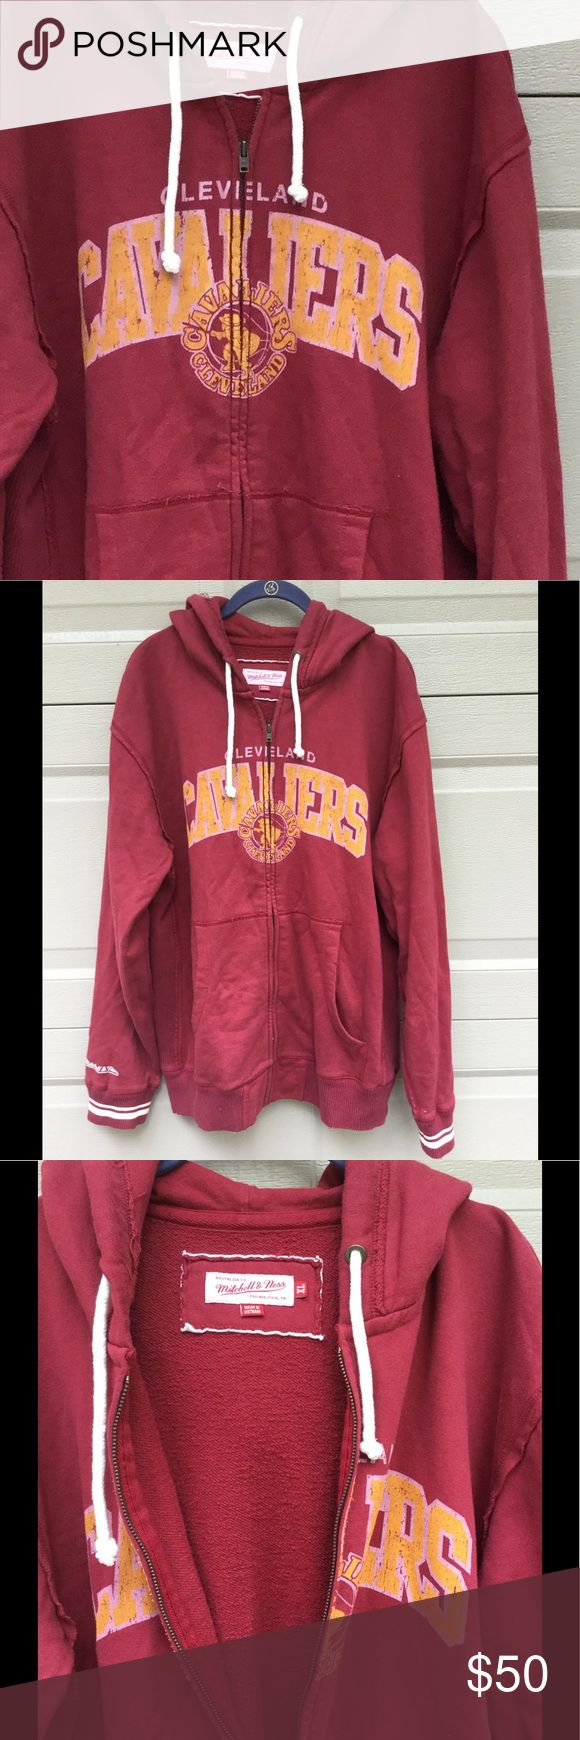 Mitchell & Ness Cleveland Cavs Zip-up Hoodie EUC Cleveland Cavs wine/maroon color with yellow gold screened vintage Cavs logo across the front; Nostalgia Co. Mitchell & Ness Brand, has a vintage look with a worn in feel; only worn once; Size XL Mitchell & Ness Shirts Sweatshirts & Hoodies